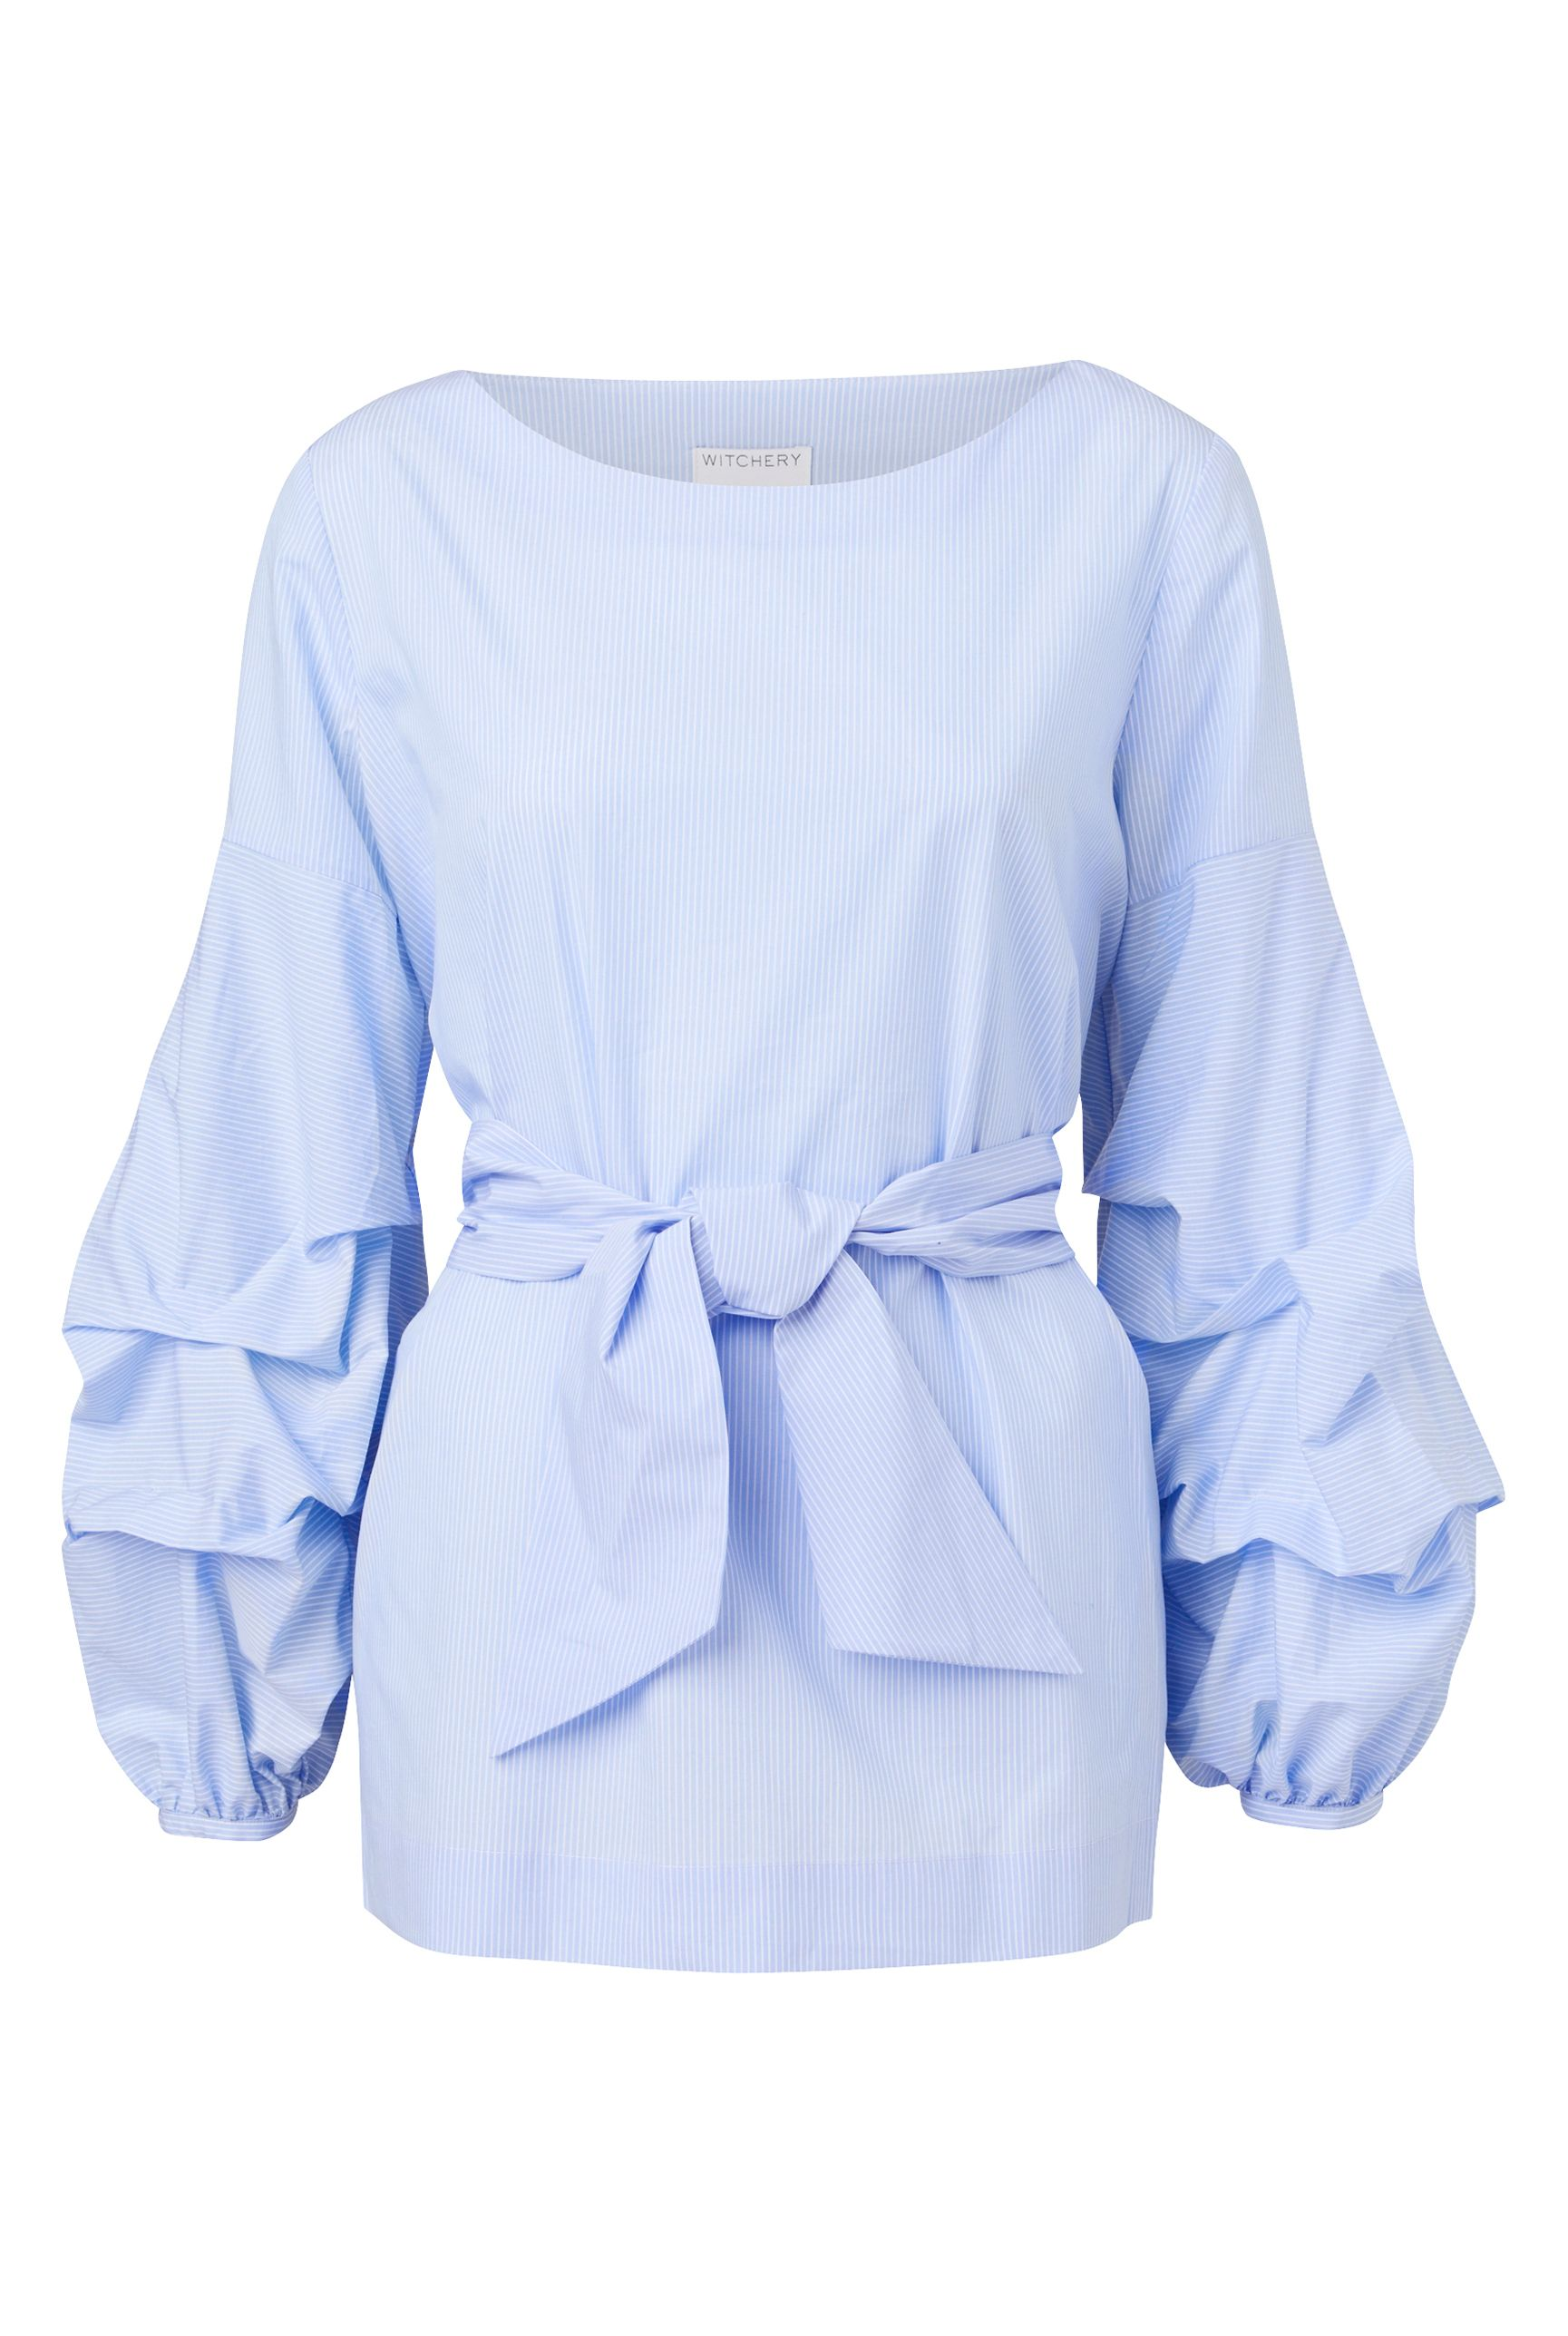 60212375_Witchery Modern Wrap Shirt, RRP $139.90